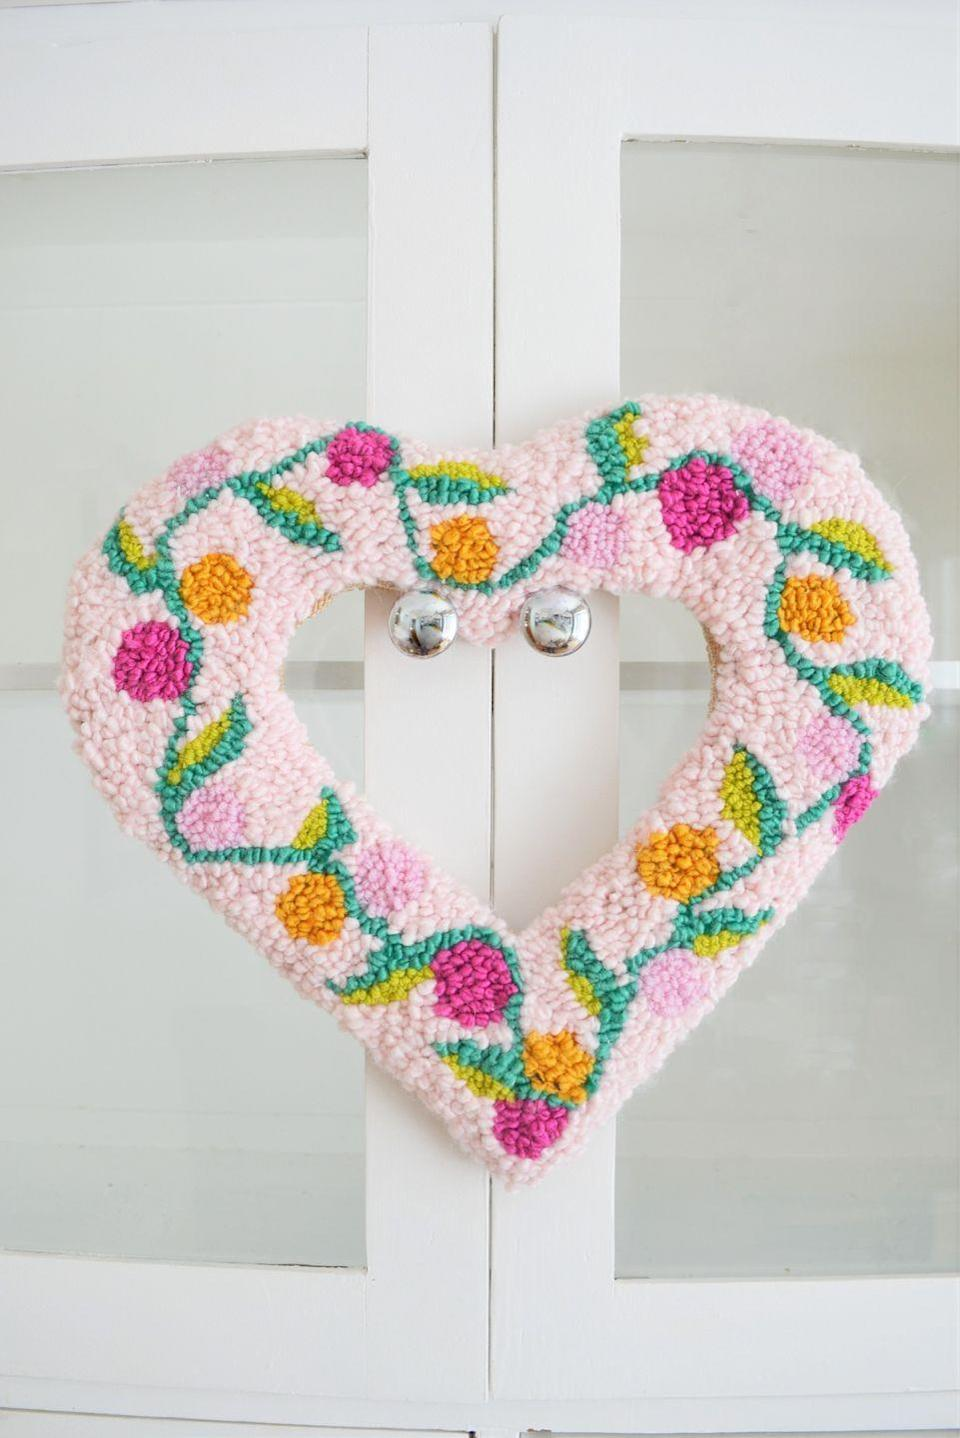 """<p>Rug hooking isn't just for rugs! In fact, it looks pretty amazing when applied to a heart-shaped wreath form that'll look lovely all spring.</p><p><strong>Get the tutorial at <a href=""""https://makingthingsisawesome.com/rug-hooking-heart-wreath-tutorial/"""" rel=""""nofollow noopener"""" target=""""_blank"""" data-ylk=""""slk:Making Things Is Awesome"""" class=""""link rapid-noclick-resp"""">Making Things Is Awesome</a>.</strong></p><p><a class=""""link rapid-noclick-resp"""" href=""""https://go.redirectingat.com?id=74968X1596630&url=https%3A%2F%2Fwww.walmart.com%2Fip%2FPoly-Fil-Extra-Loft-Queen-Size-Bonded-Polyester-Quilt-Batting-90-x-108-1-Each%2F46021937&sref=https%3A%2F%2Fwww.thepioneerwoman.com%2Fhome-lifestyle%2Fcrafts-diy%2Fg35698457%2Fdiy-easter-wreath-ideas%2F"""" rel=""""nofollow noopener"""" target=""""_blank"""" data-ylk=""""slk:SHOP QUILT BATTING"""">SHOP QUILT BATTING</a></p>"""